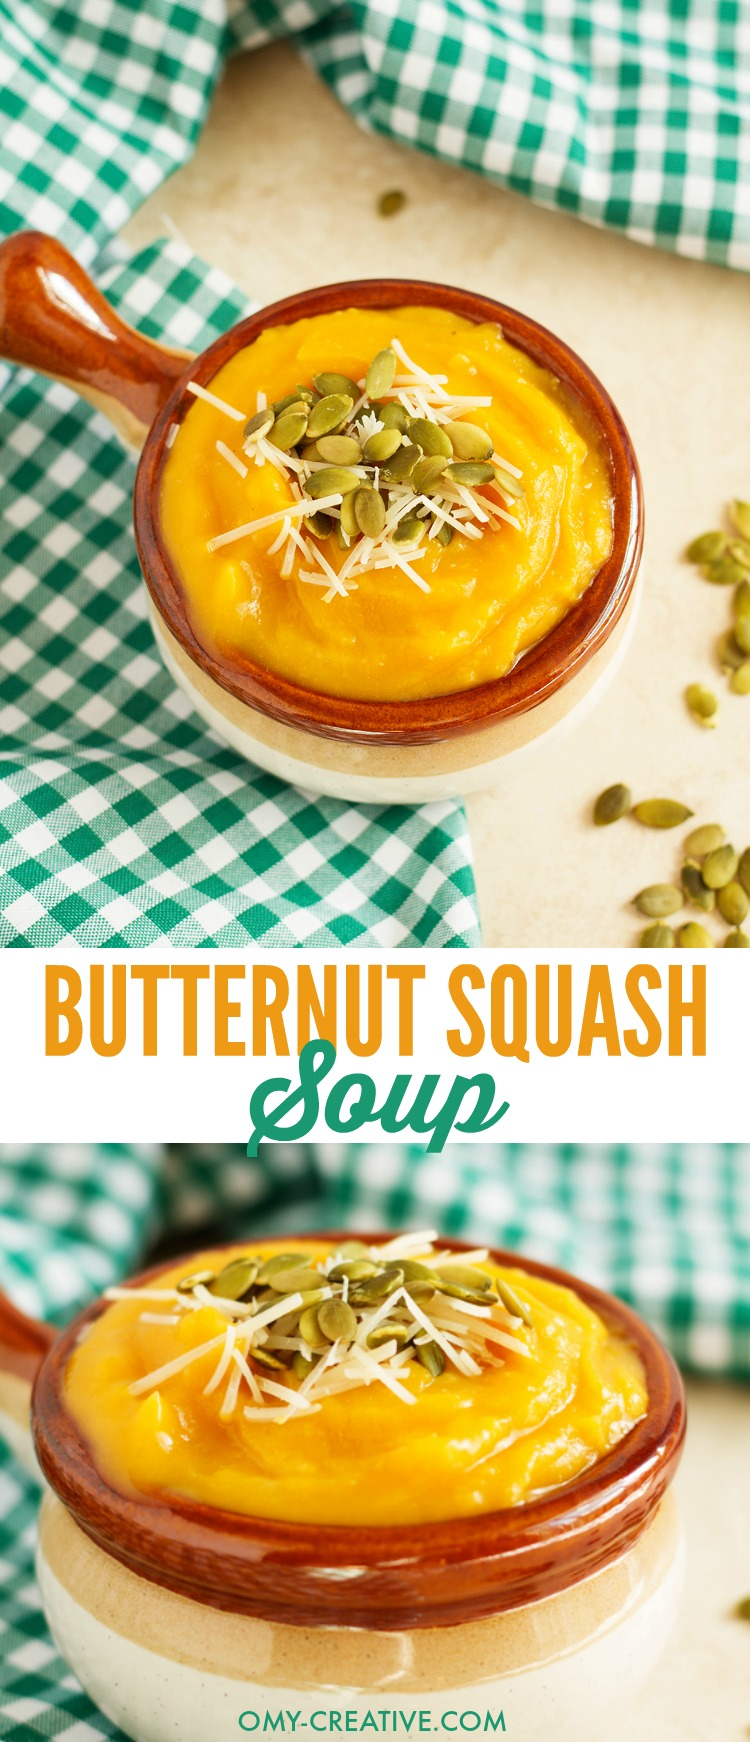 Hearty butternut squash soup recipe is perfect Fall soup recipe for cold winter months. Simple and easy to make soup with added cumin for additional flavor and topped with pepitas. OHMY-CREATIVE.COM